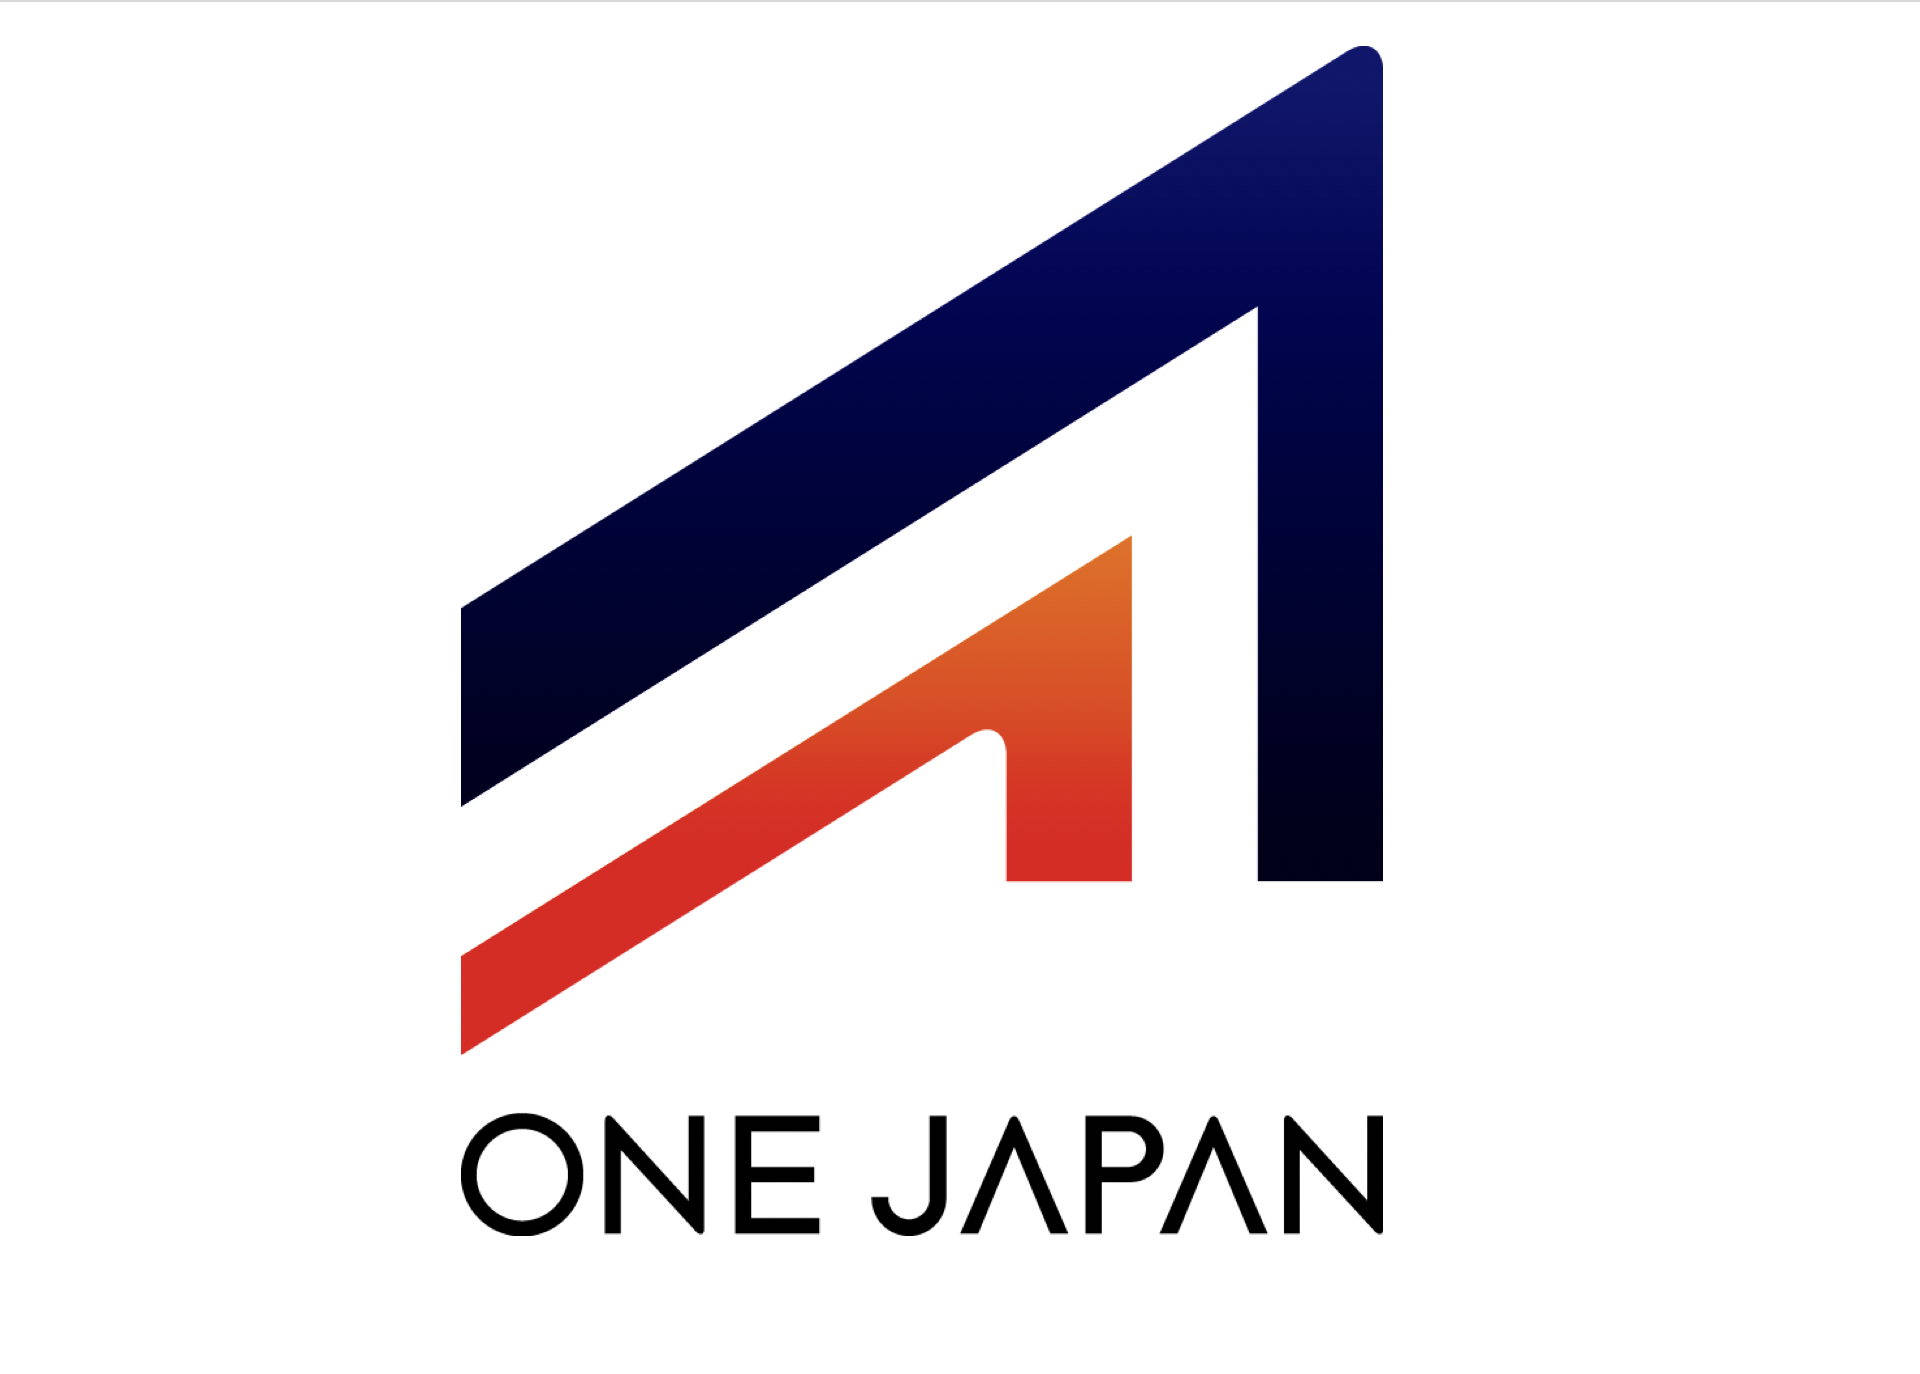 ONE JAPAN